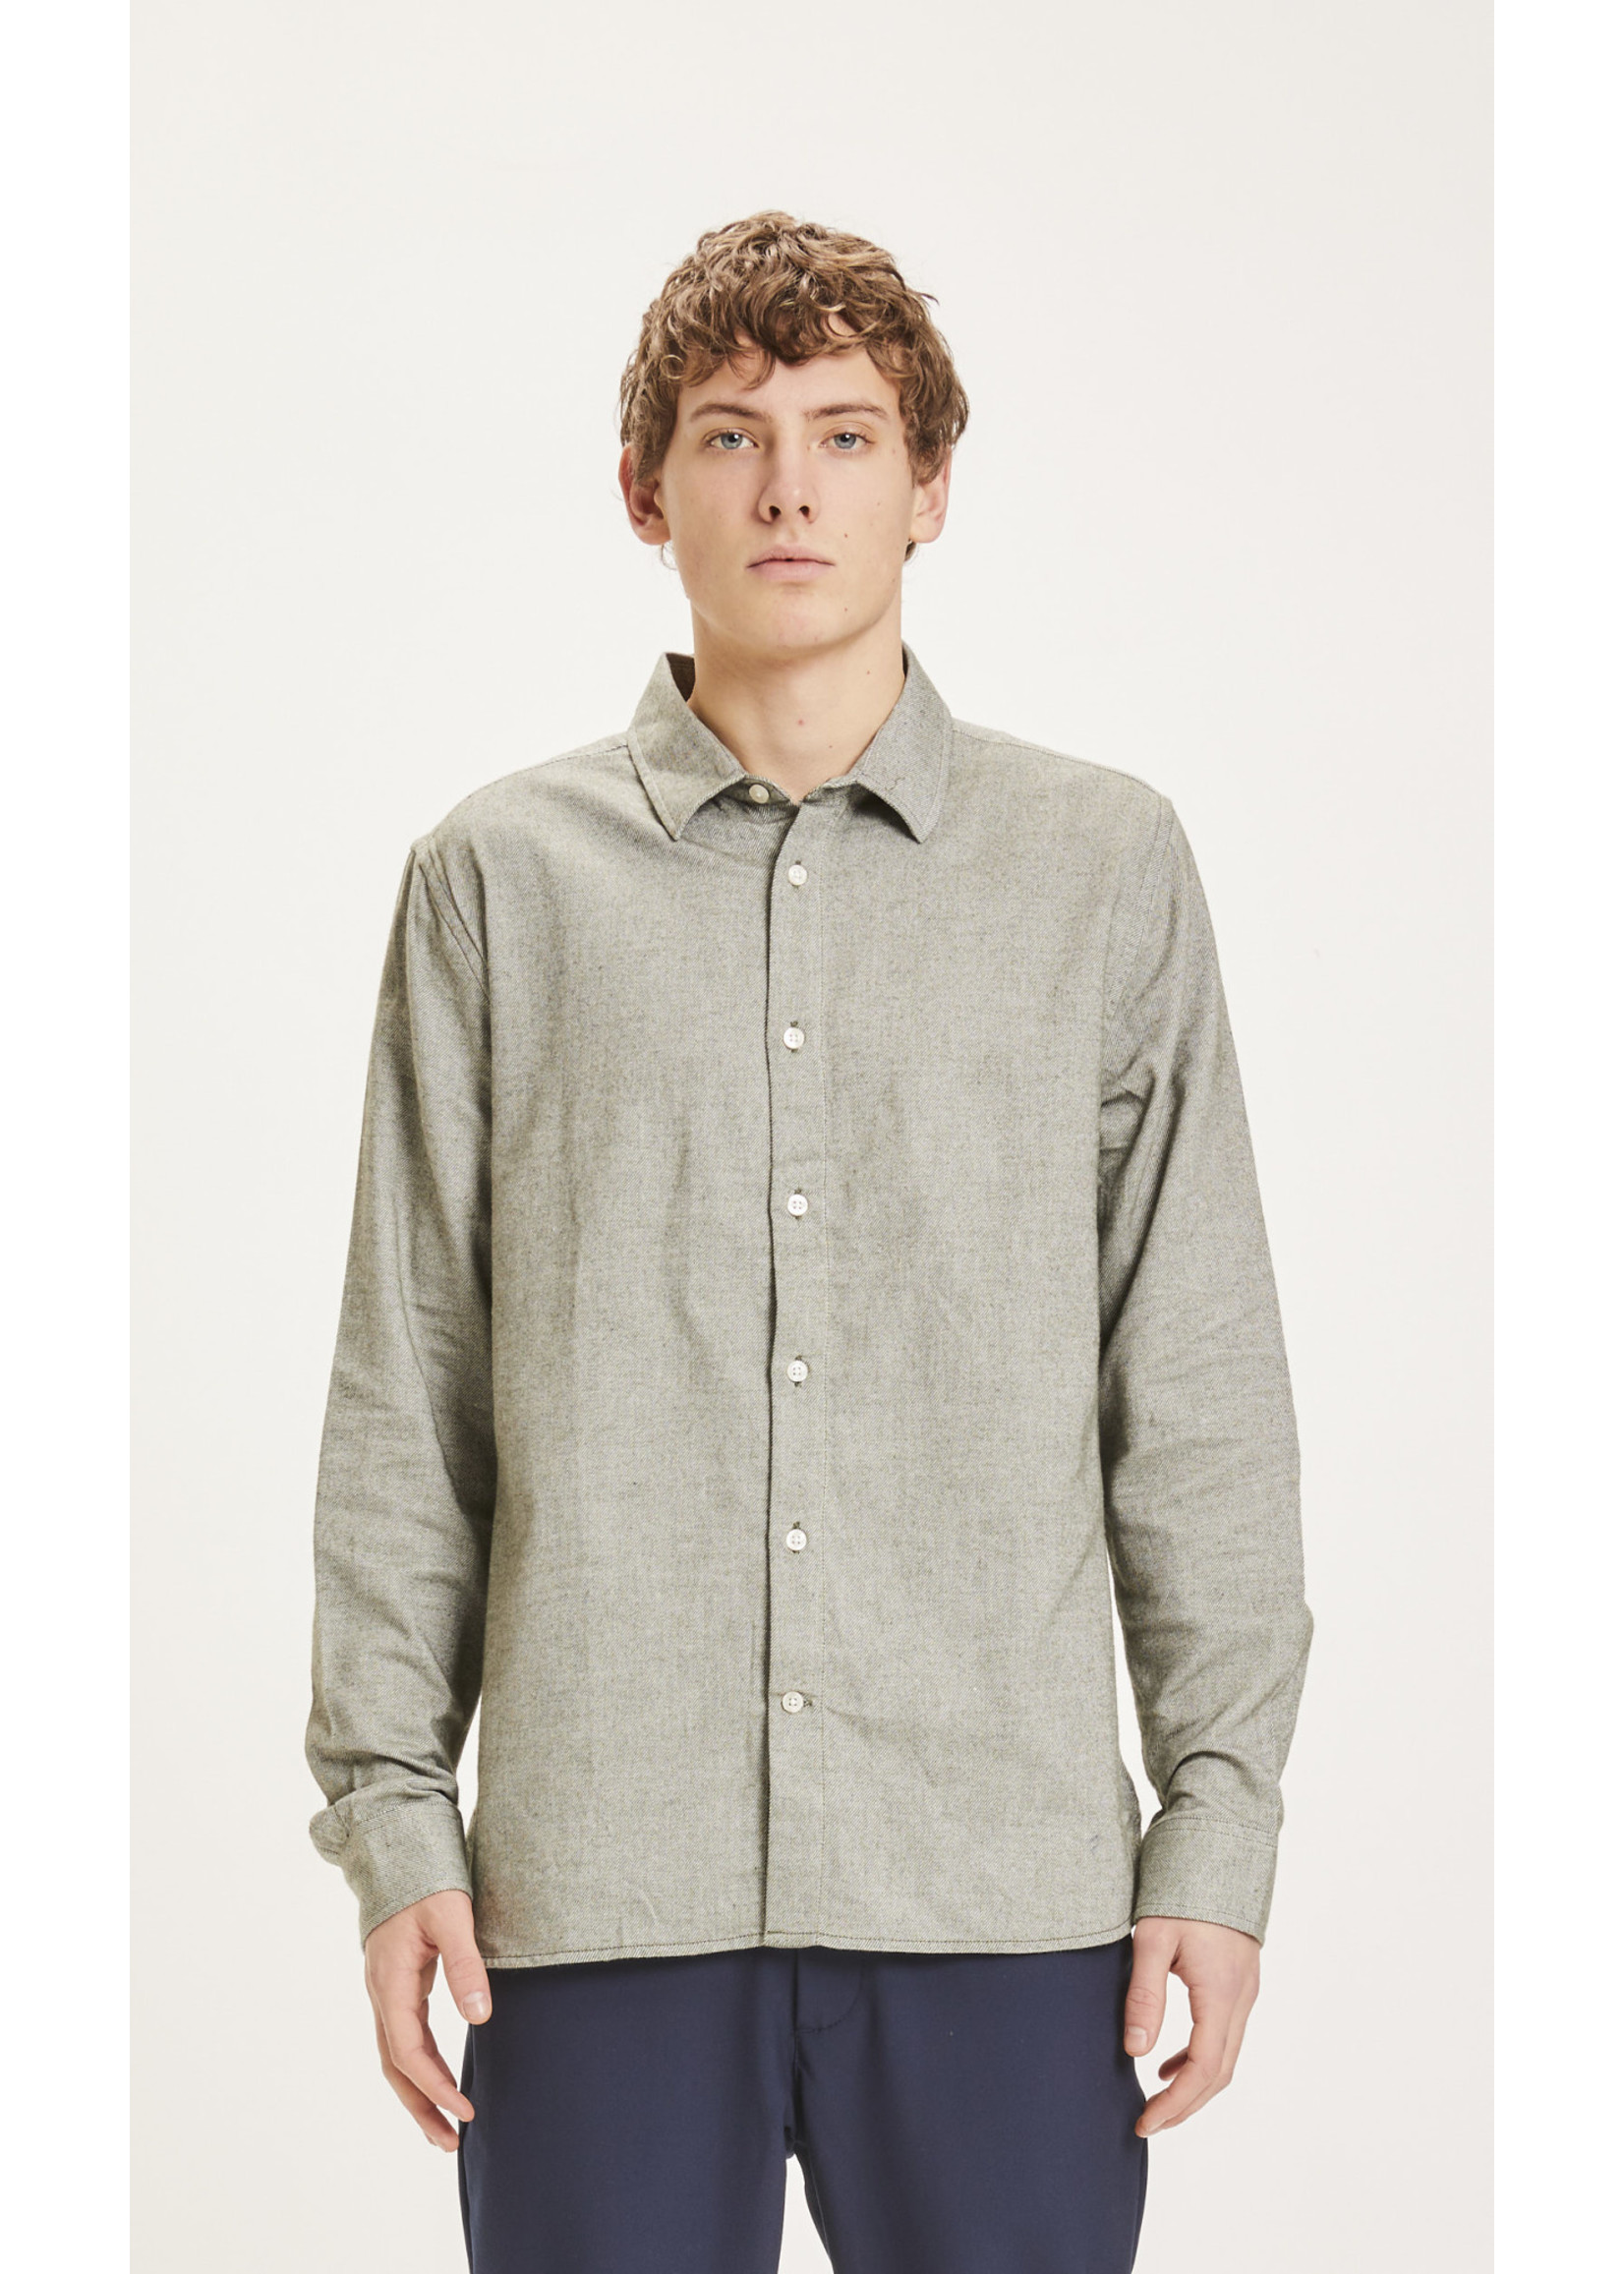 KnowledgeCotton KnowledgeCotton LARCH casual fit heavy flannel shirt - Forrest Night